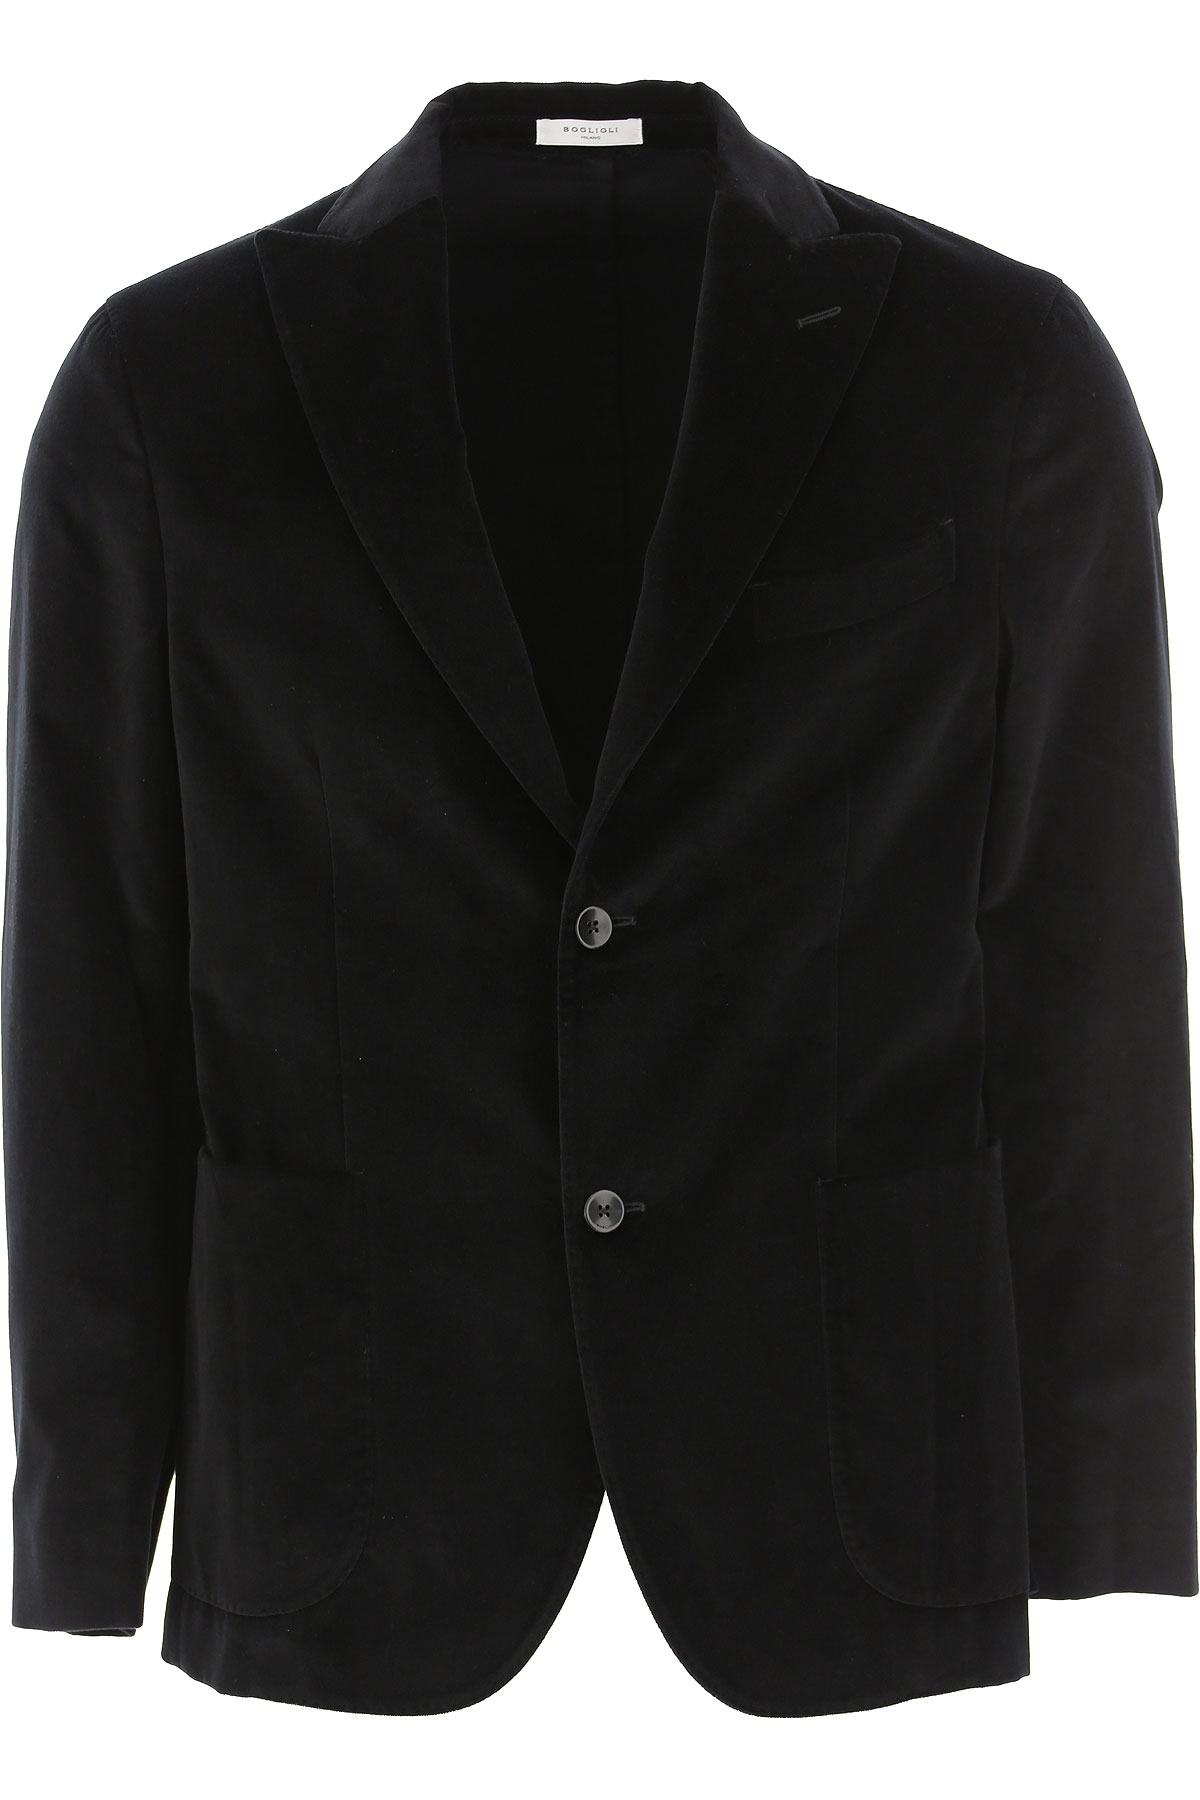 Boglioli Blazer for Men, Sport Coat On Sale, Black, Cotton, 2019, L M S